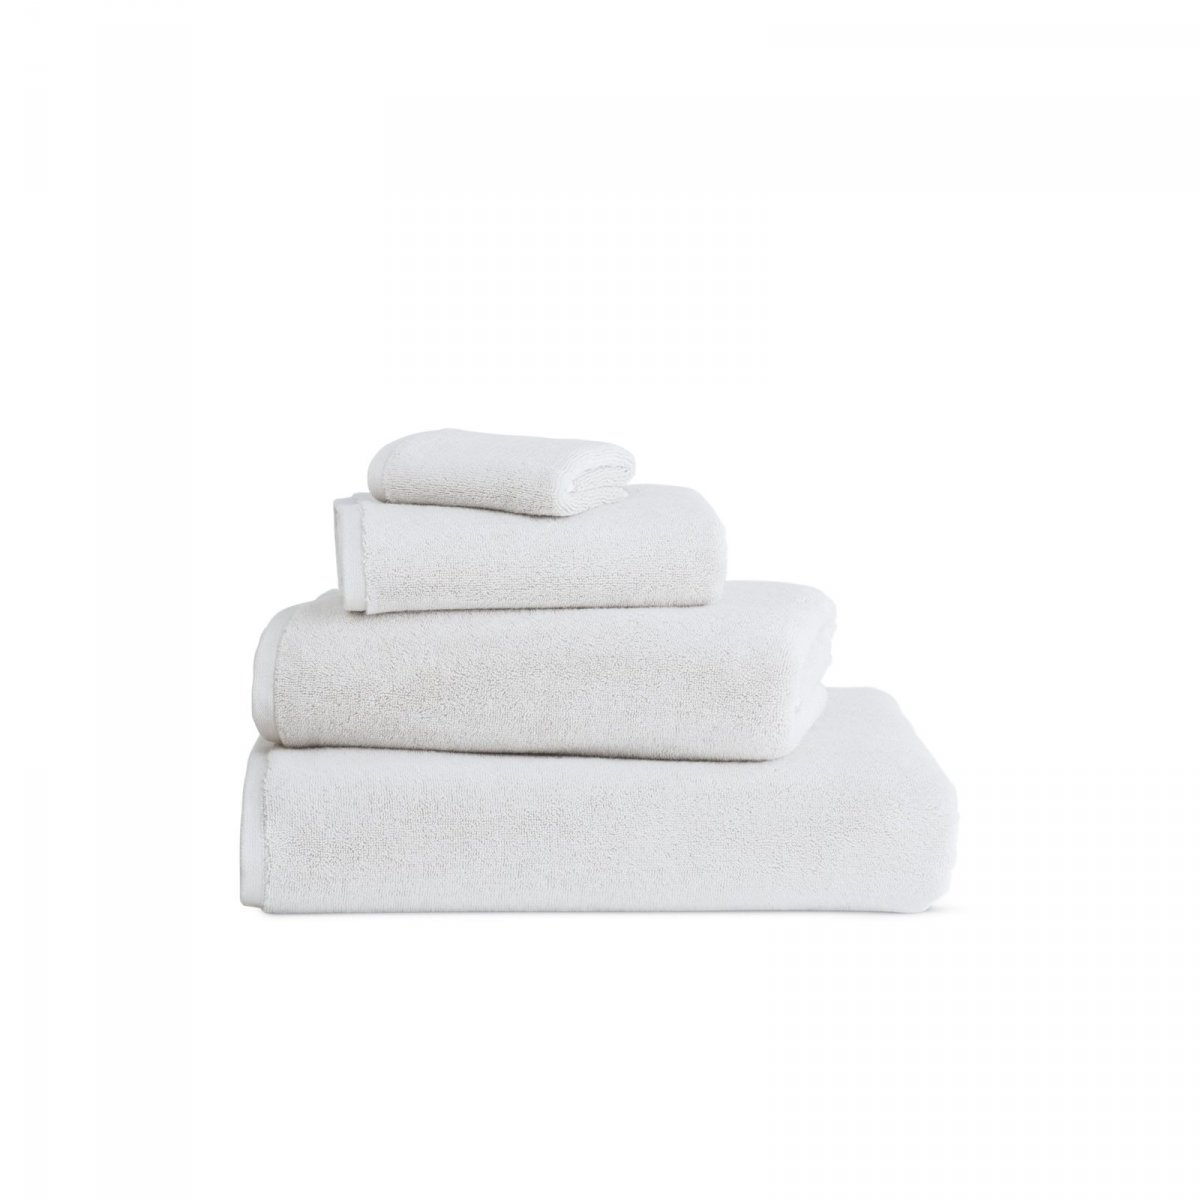 DWR Aerocotton Towels, white.